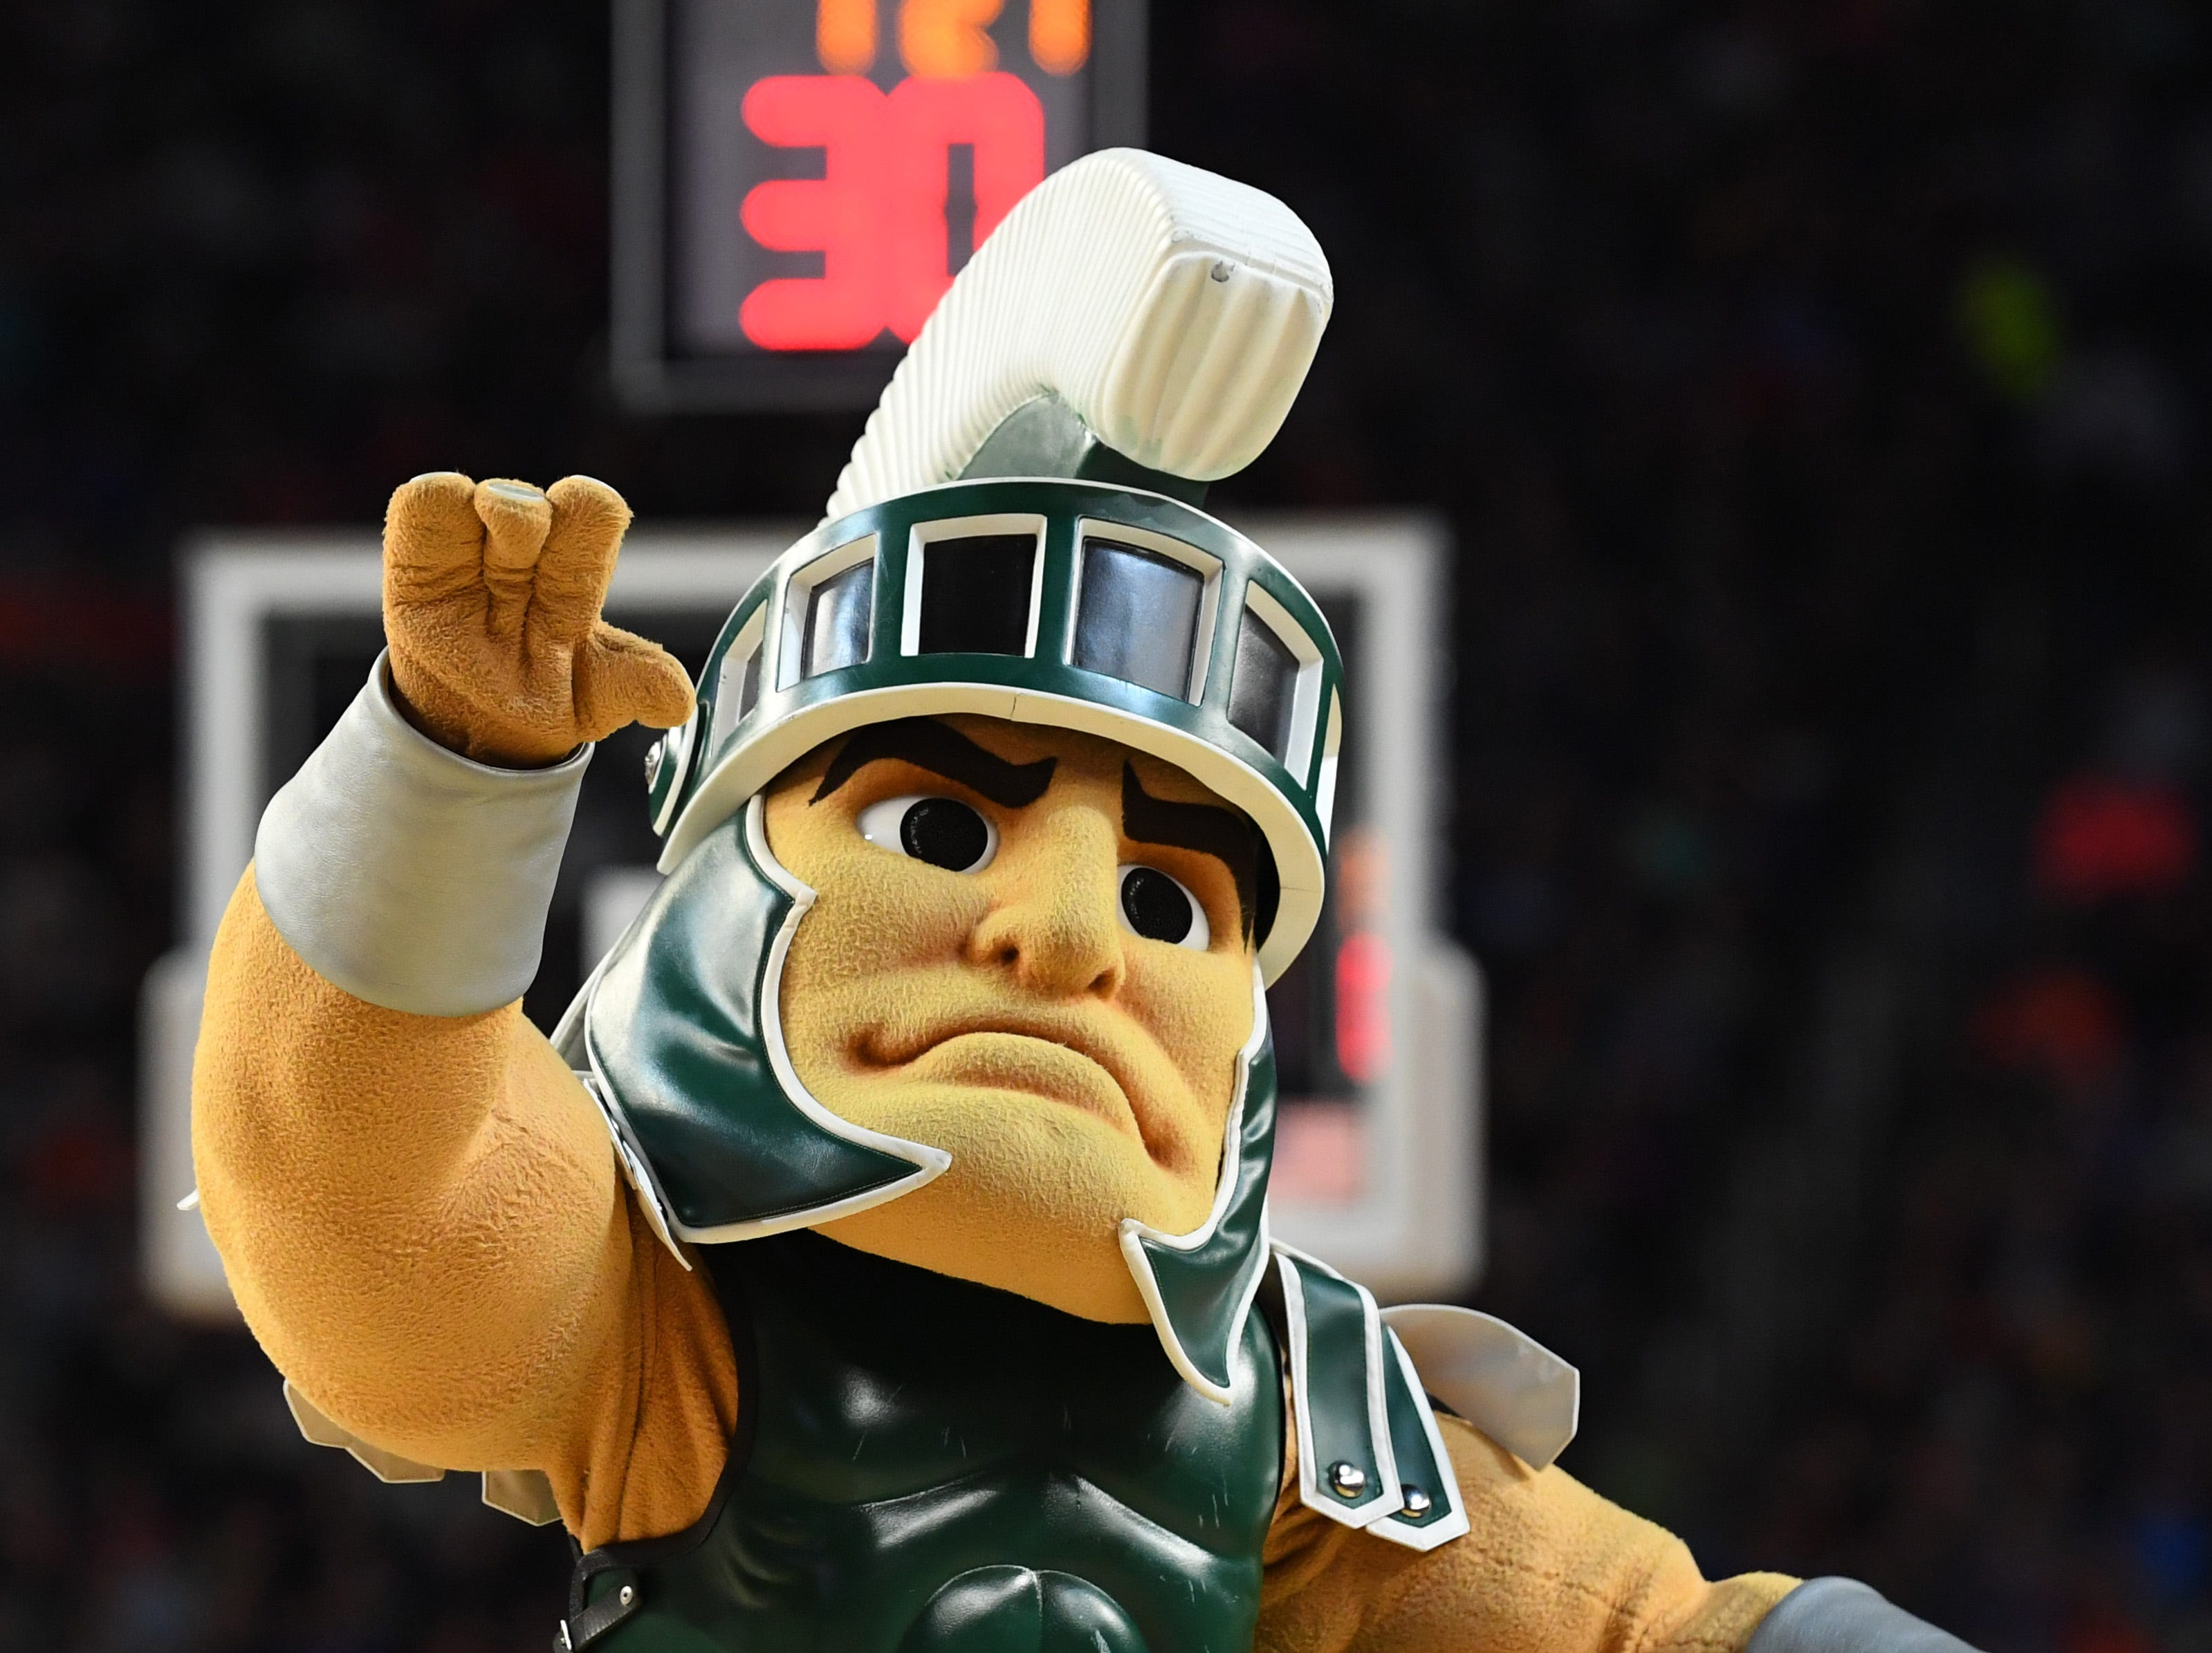 Apr 6, 2019; Minneapolis, MN, USA; Michigan State Spartans mascot during a time-out against the Texas Tech Red Raiders in the semifinals of the 2019 men's Final Four at US Bank Stadium. Mandatory Credit: Robert Deutsch-USA TODAY Sports